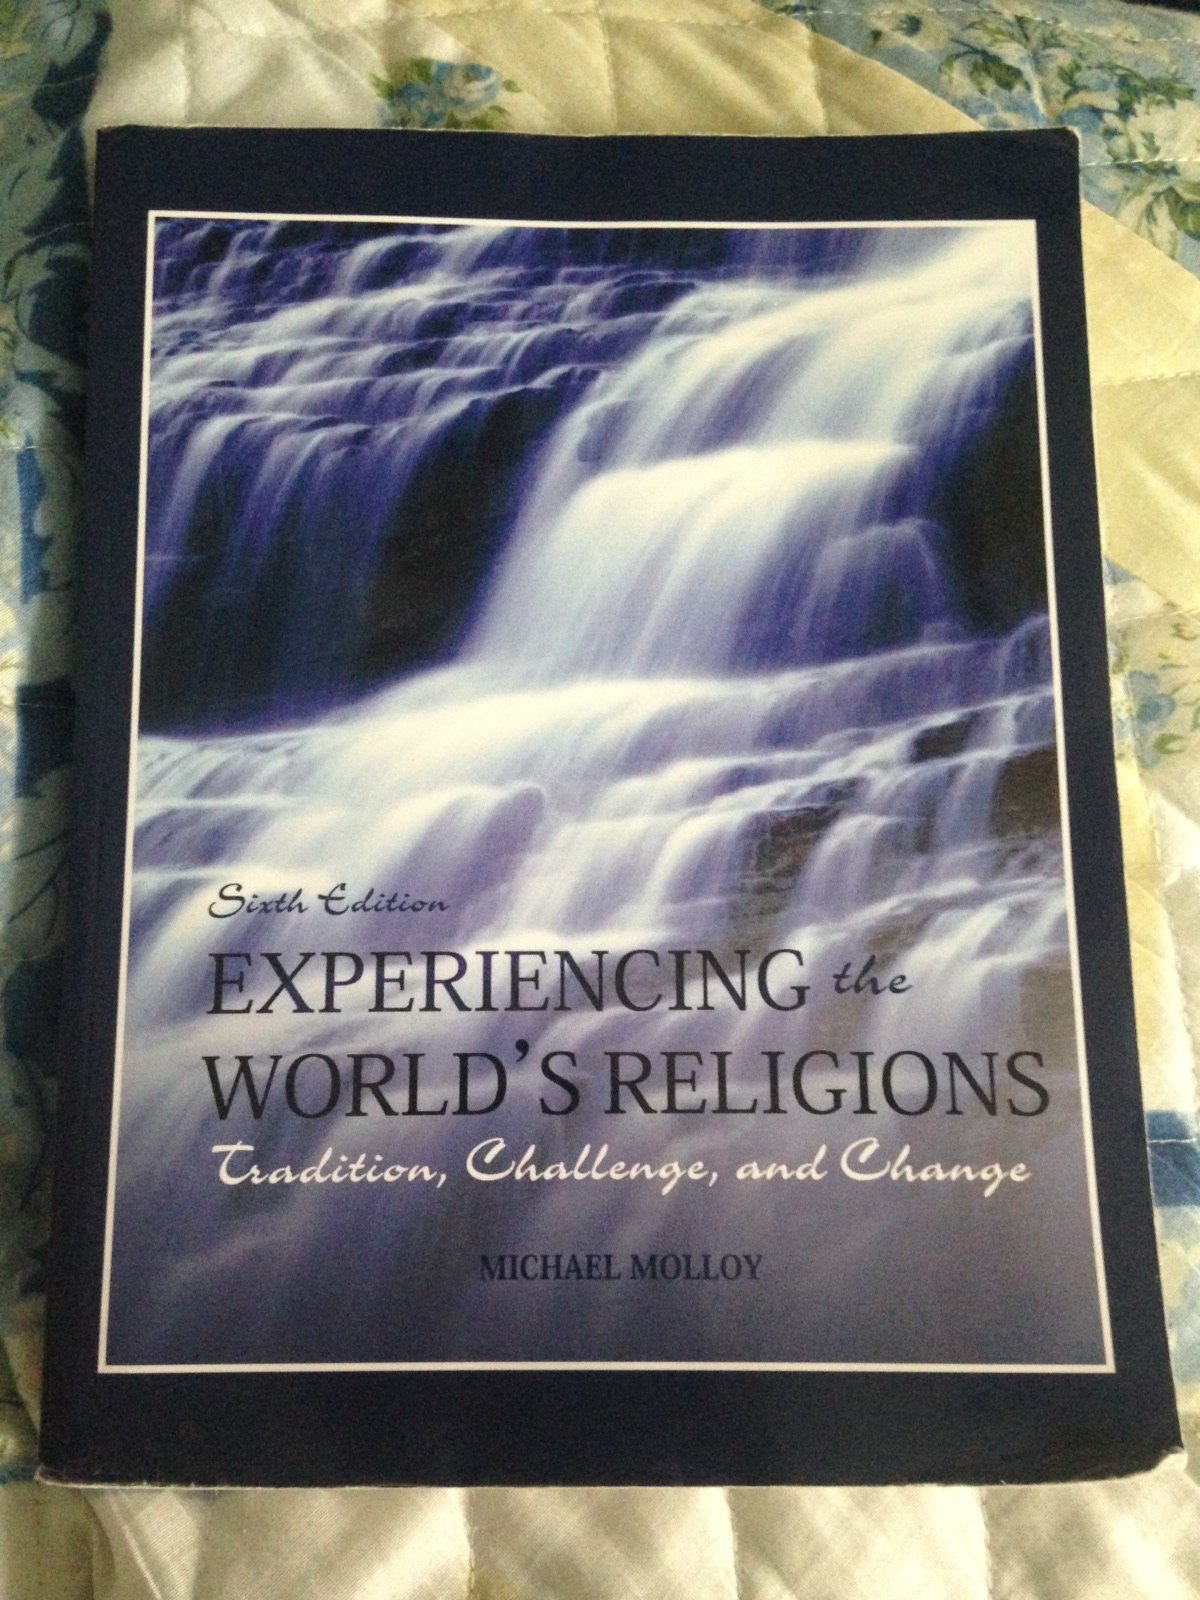 Experiencing the World's Religions; Tradition, Challenge, and Change, 6th  Custom Hawaii Edition: 9781121770058: Amazon.com: Books